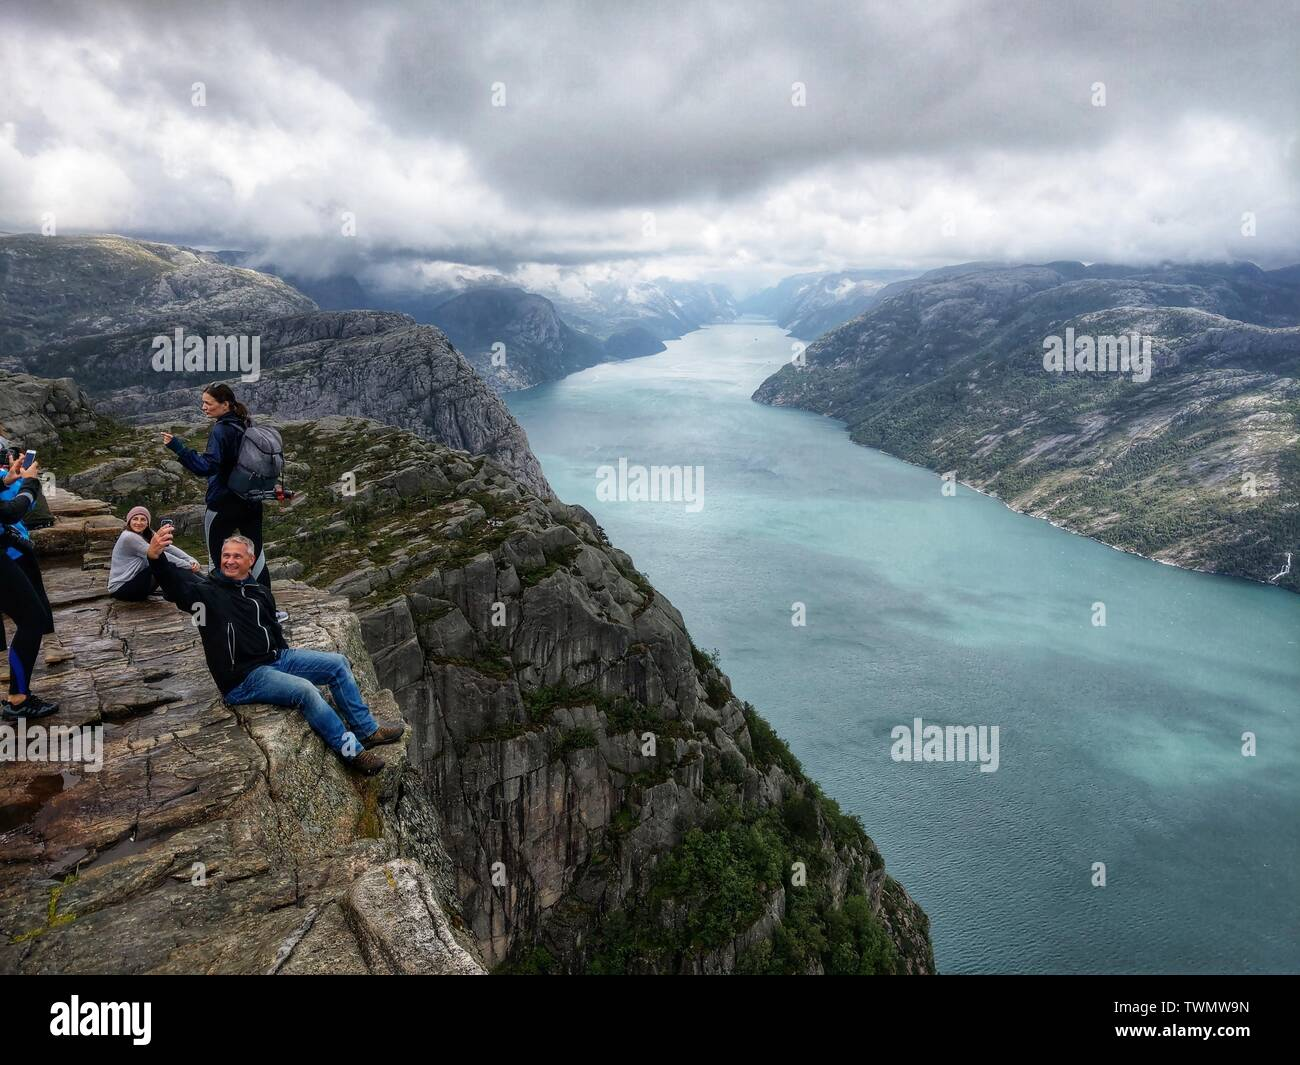 Preikestolen, Norway. 21st June, 2019. A man takes a selfie with the Lysefjord in the background while at Norway's Preikestolen (Pulpit Rock) Credit: Sachelle Babbar/ZUMA Wire/Alamy Live News - Stock Image